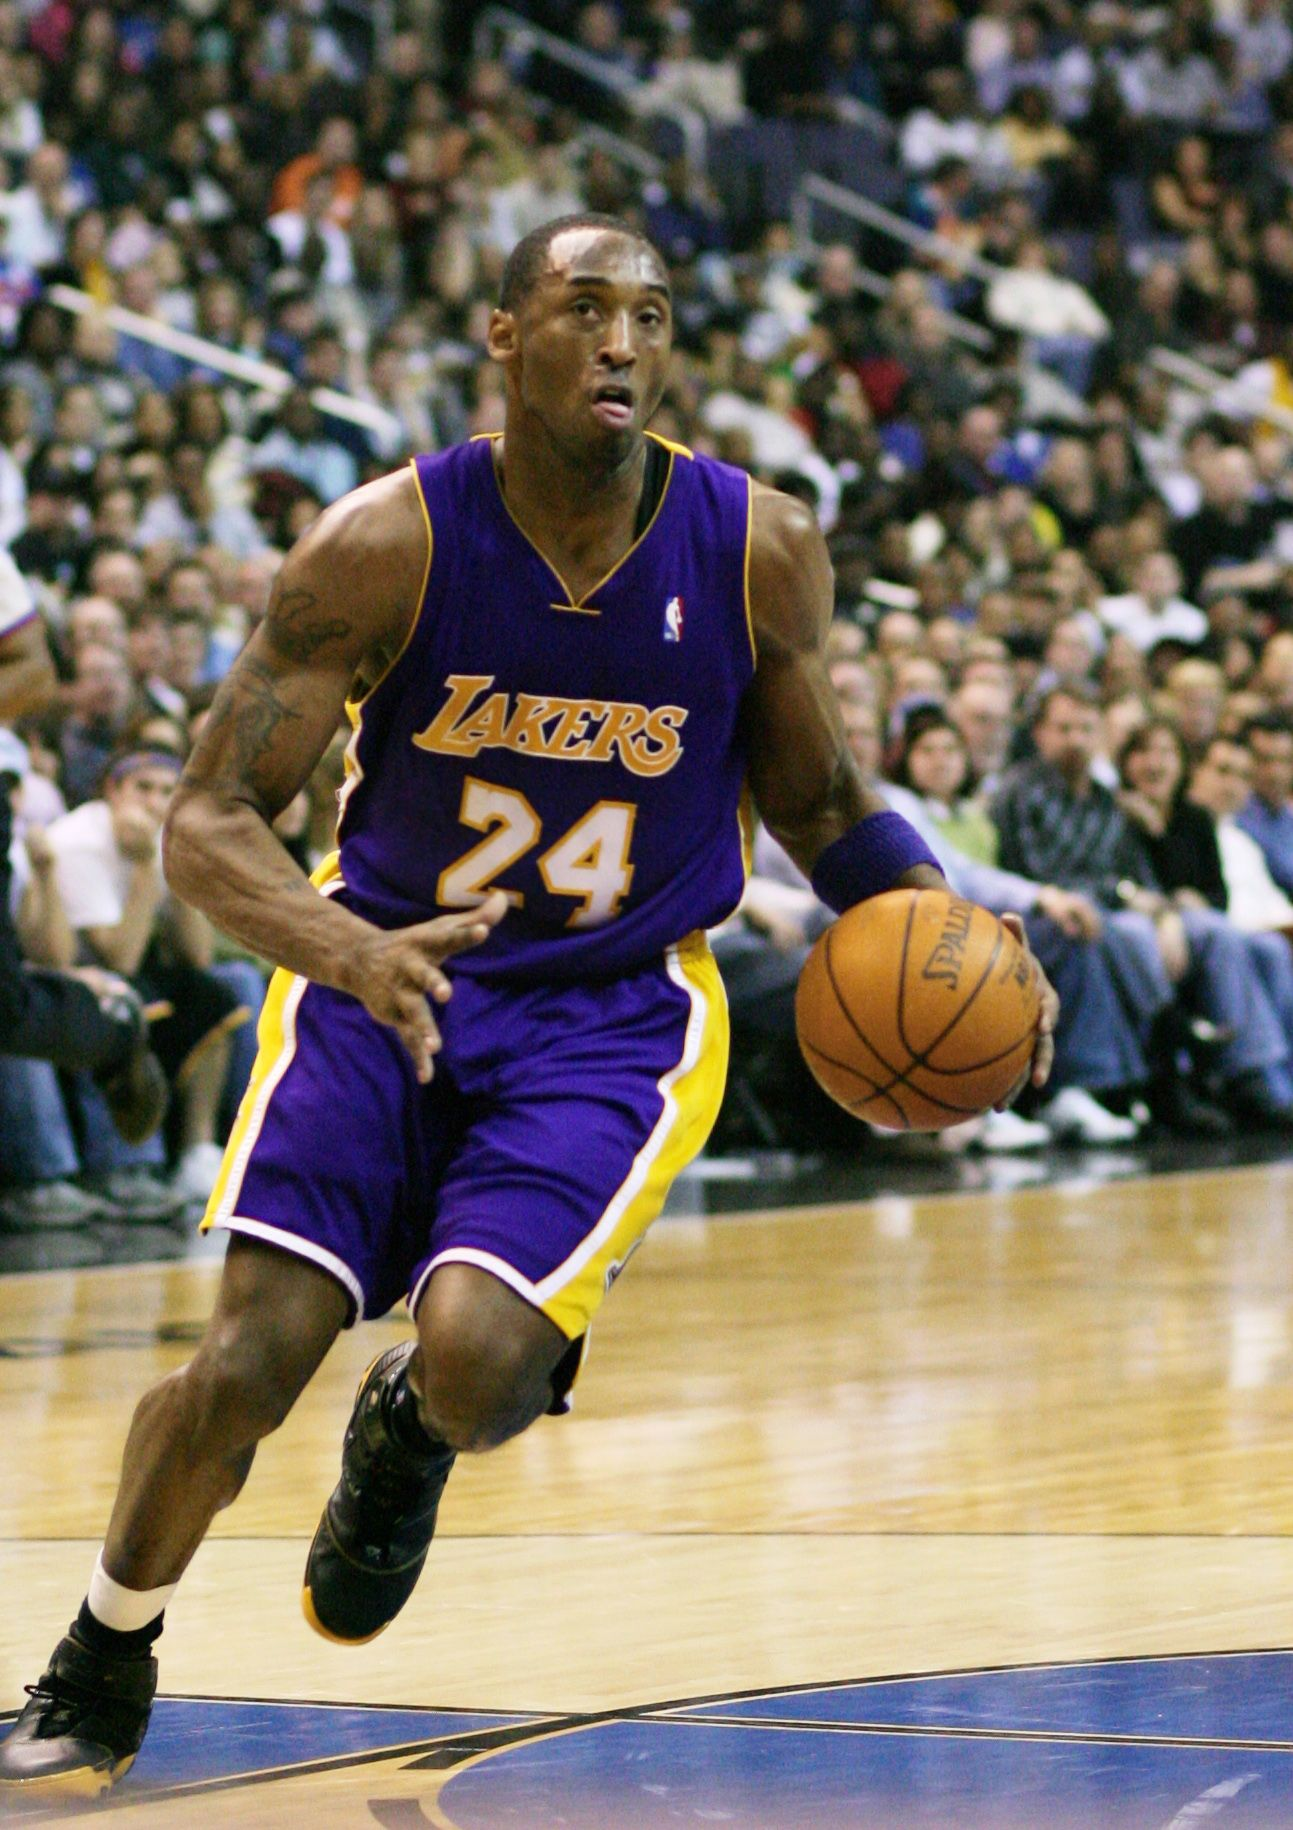 Kobe Bryant Wallpaper Hd Nice Wallpaper | wallpapers | Pinterest | Kobe  bryant and Kobe